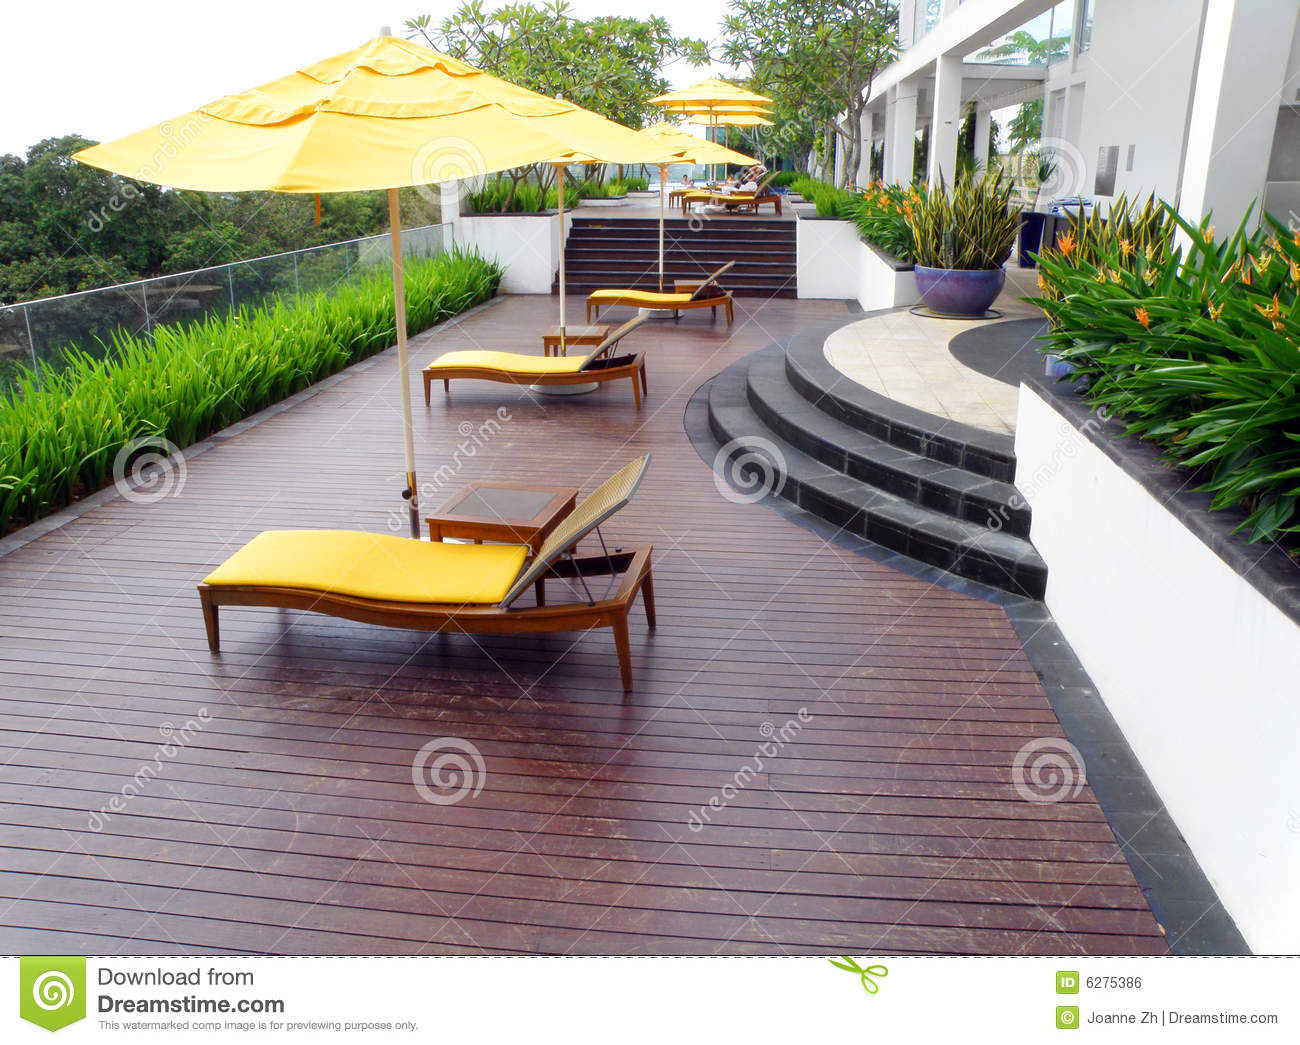 Roof Top Garden Design Royalty Free Stock Image Image  : roof top garden design 6275386 from www.dreamstime.com size 1300 x 1045 jpeg 228kB